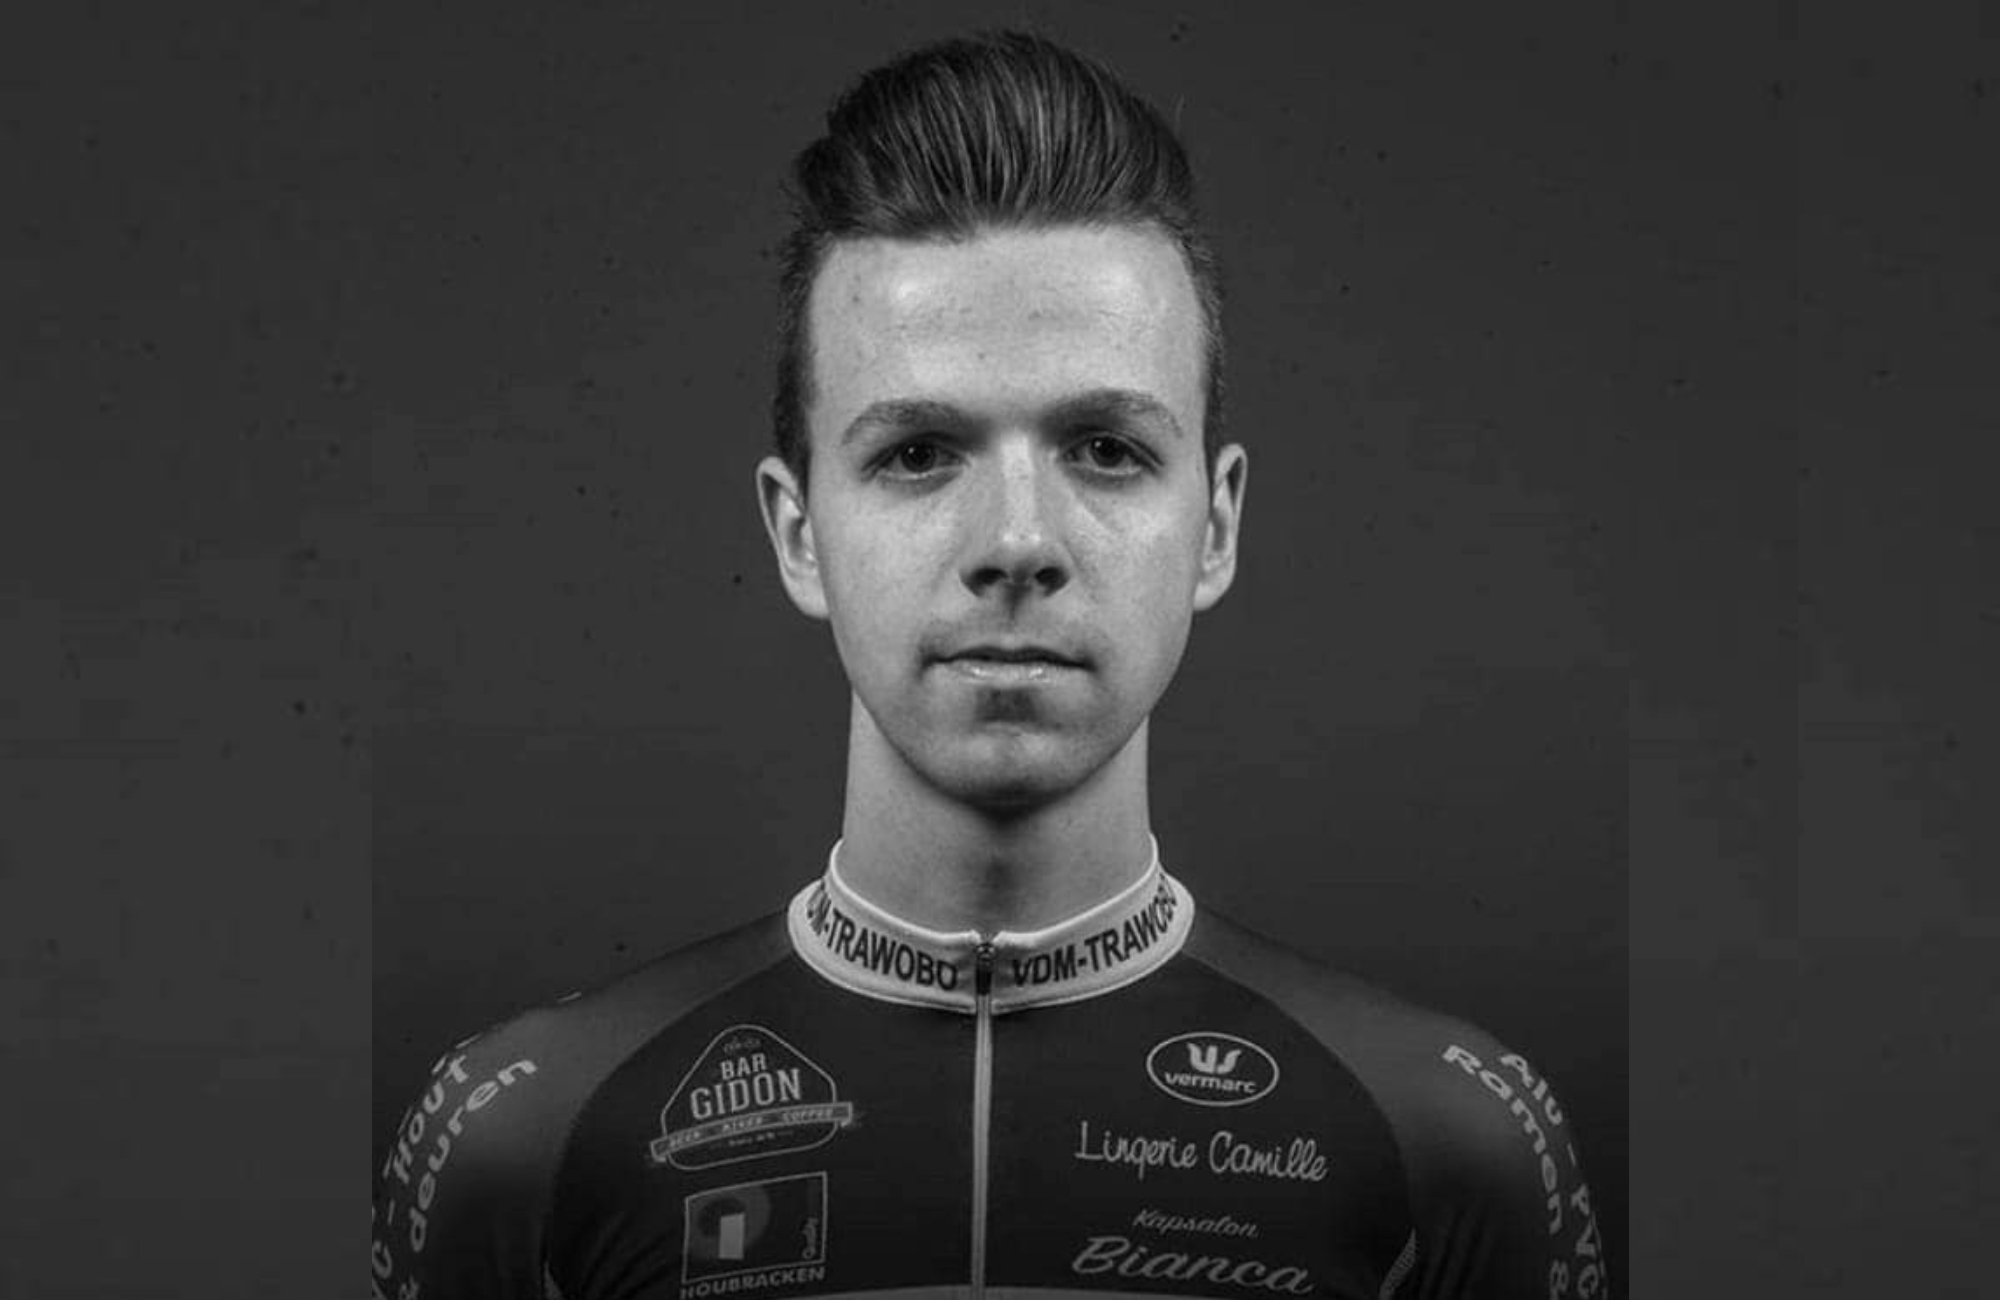 20-year-old Belgian rider dies during first post-coronavirus race - Cycling Weekly